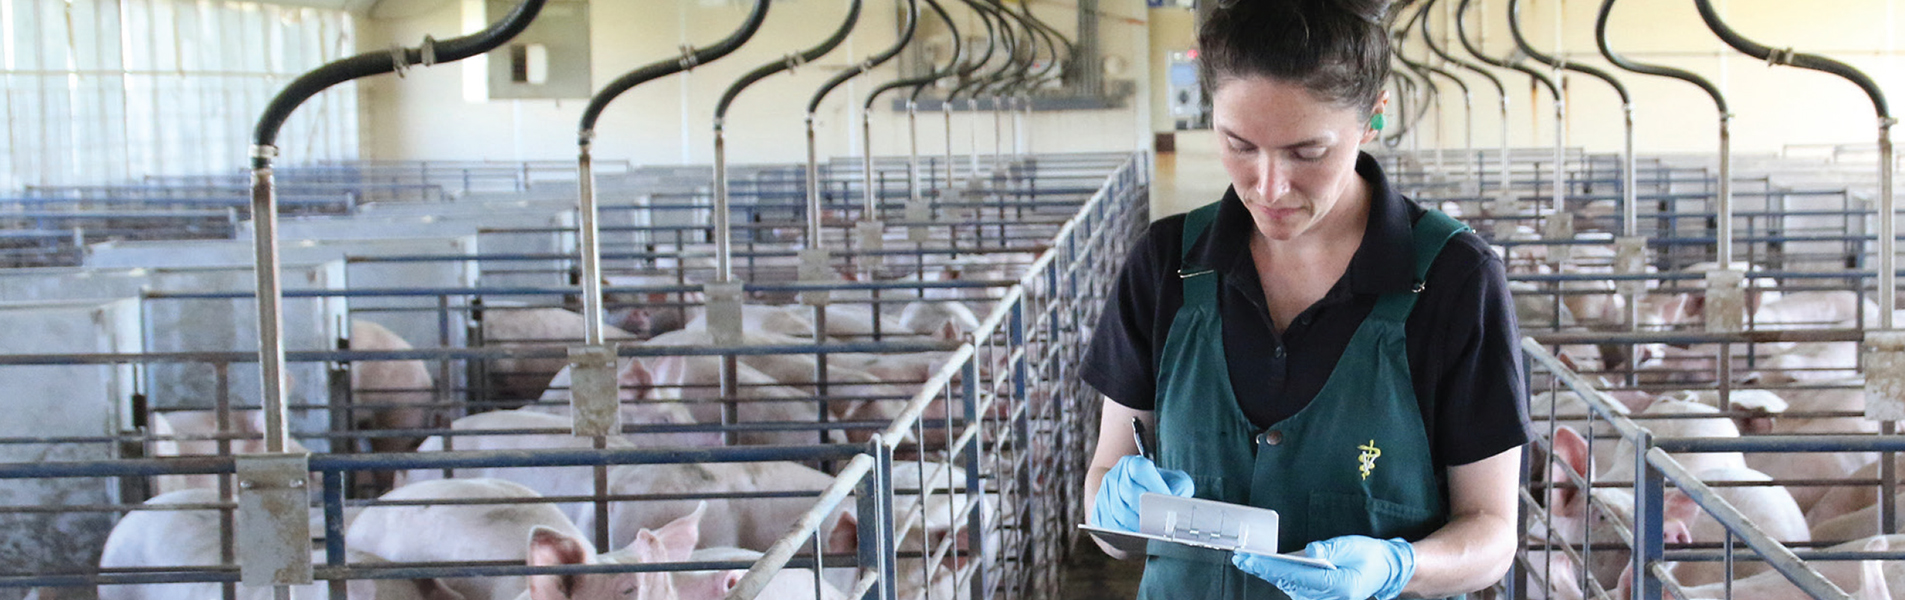 Veterinarians find easier way to collect diagnostic samples